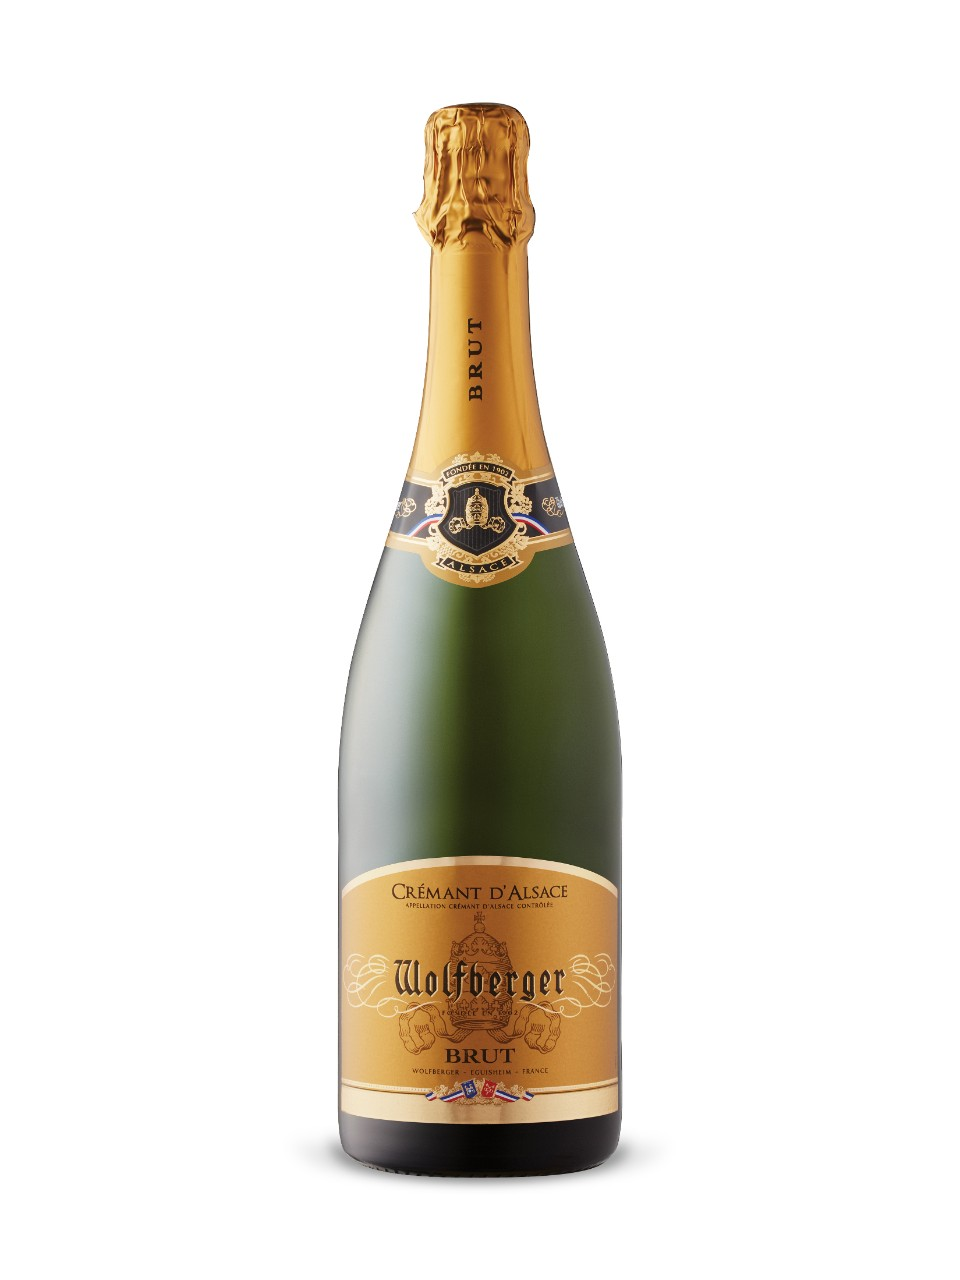 Wolfberger Brut Crémant d'Alsace from LCBO